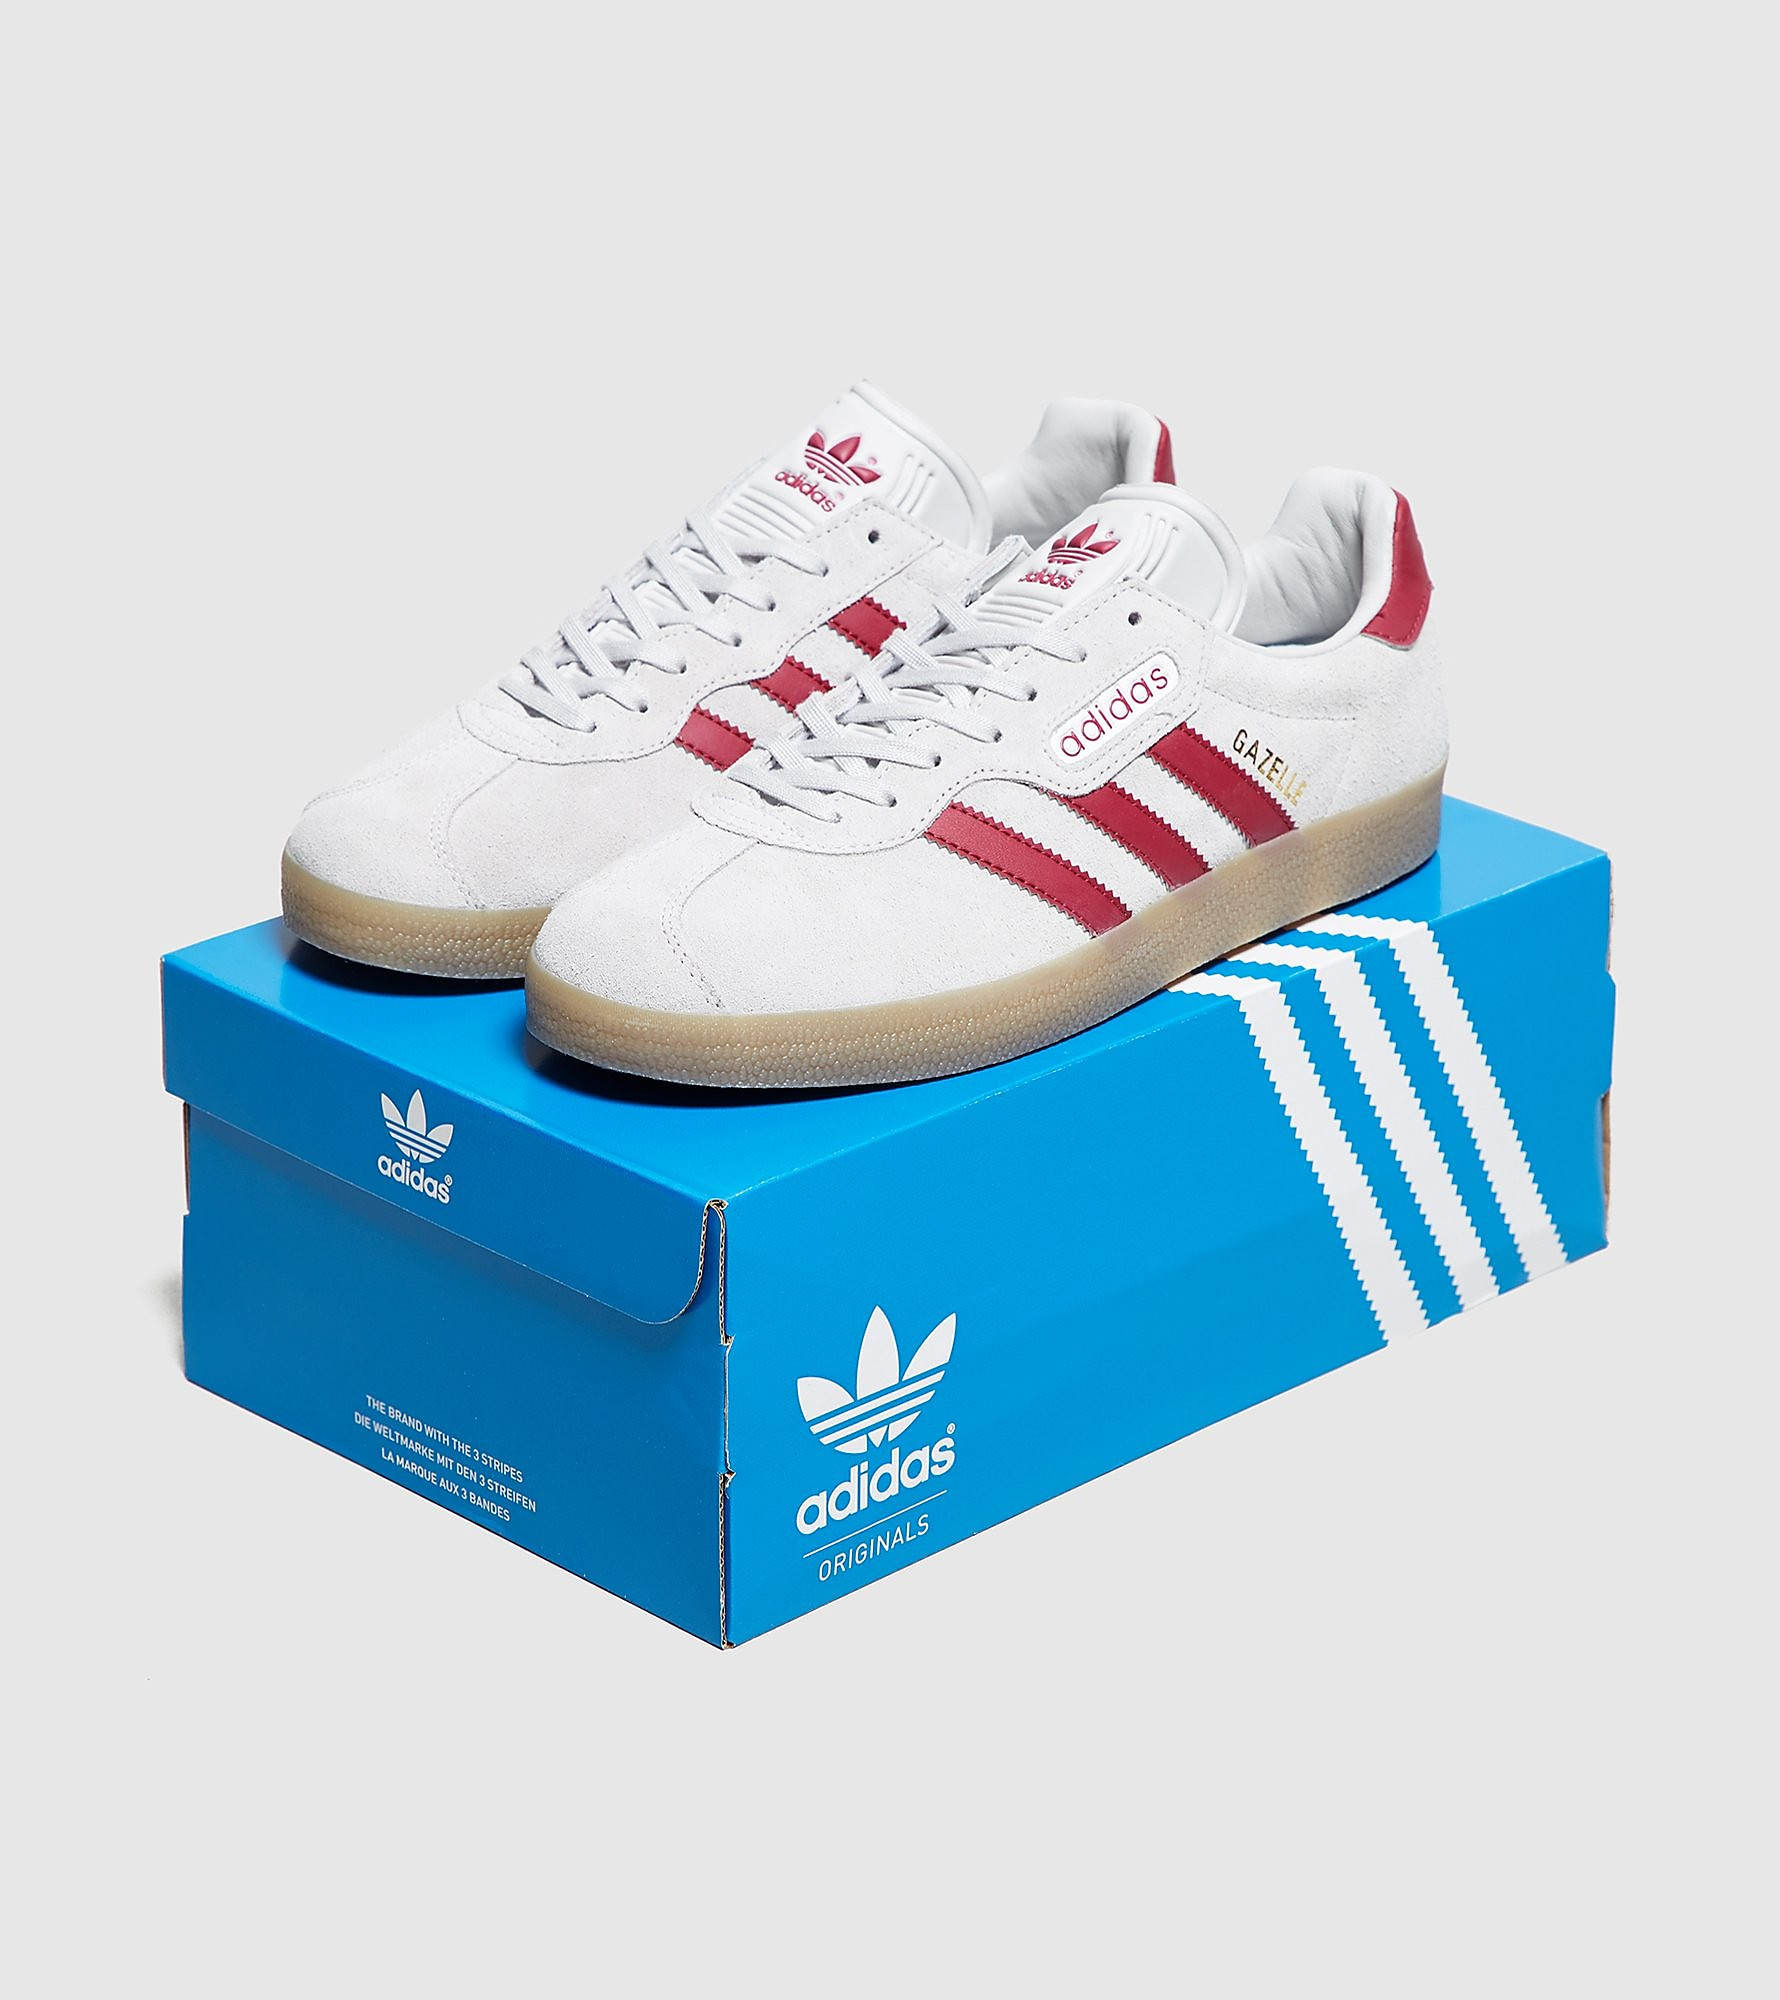 adidas Originals Gazelle Super